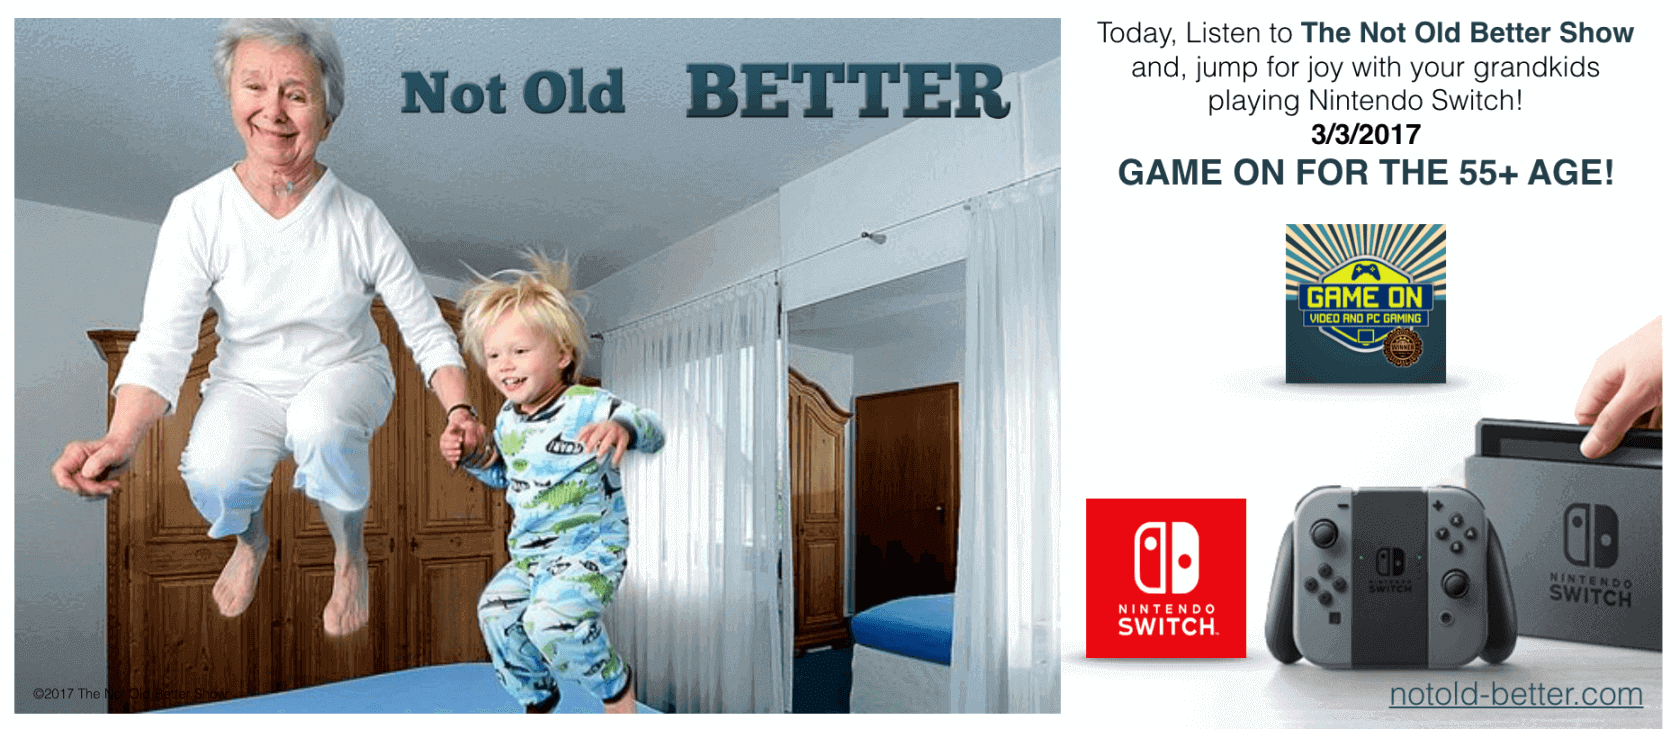 Nintendo Switch The Not Old Better Show